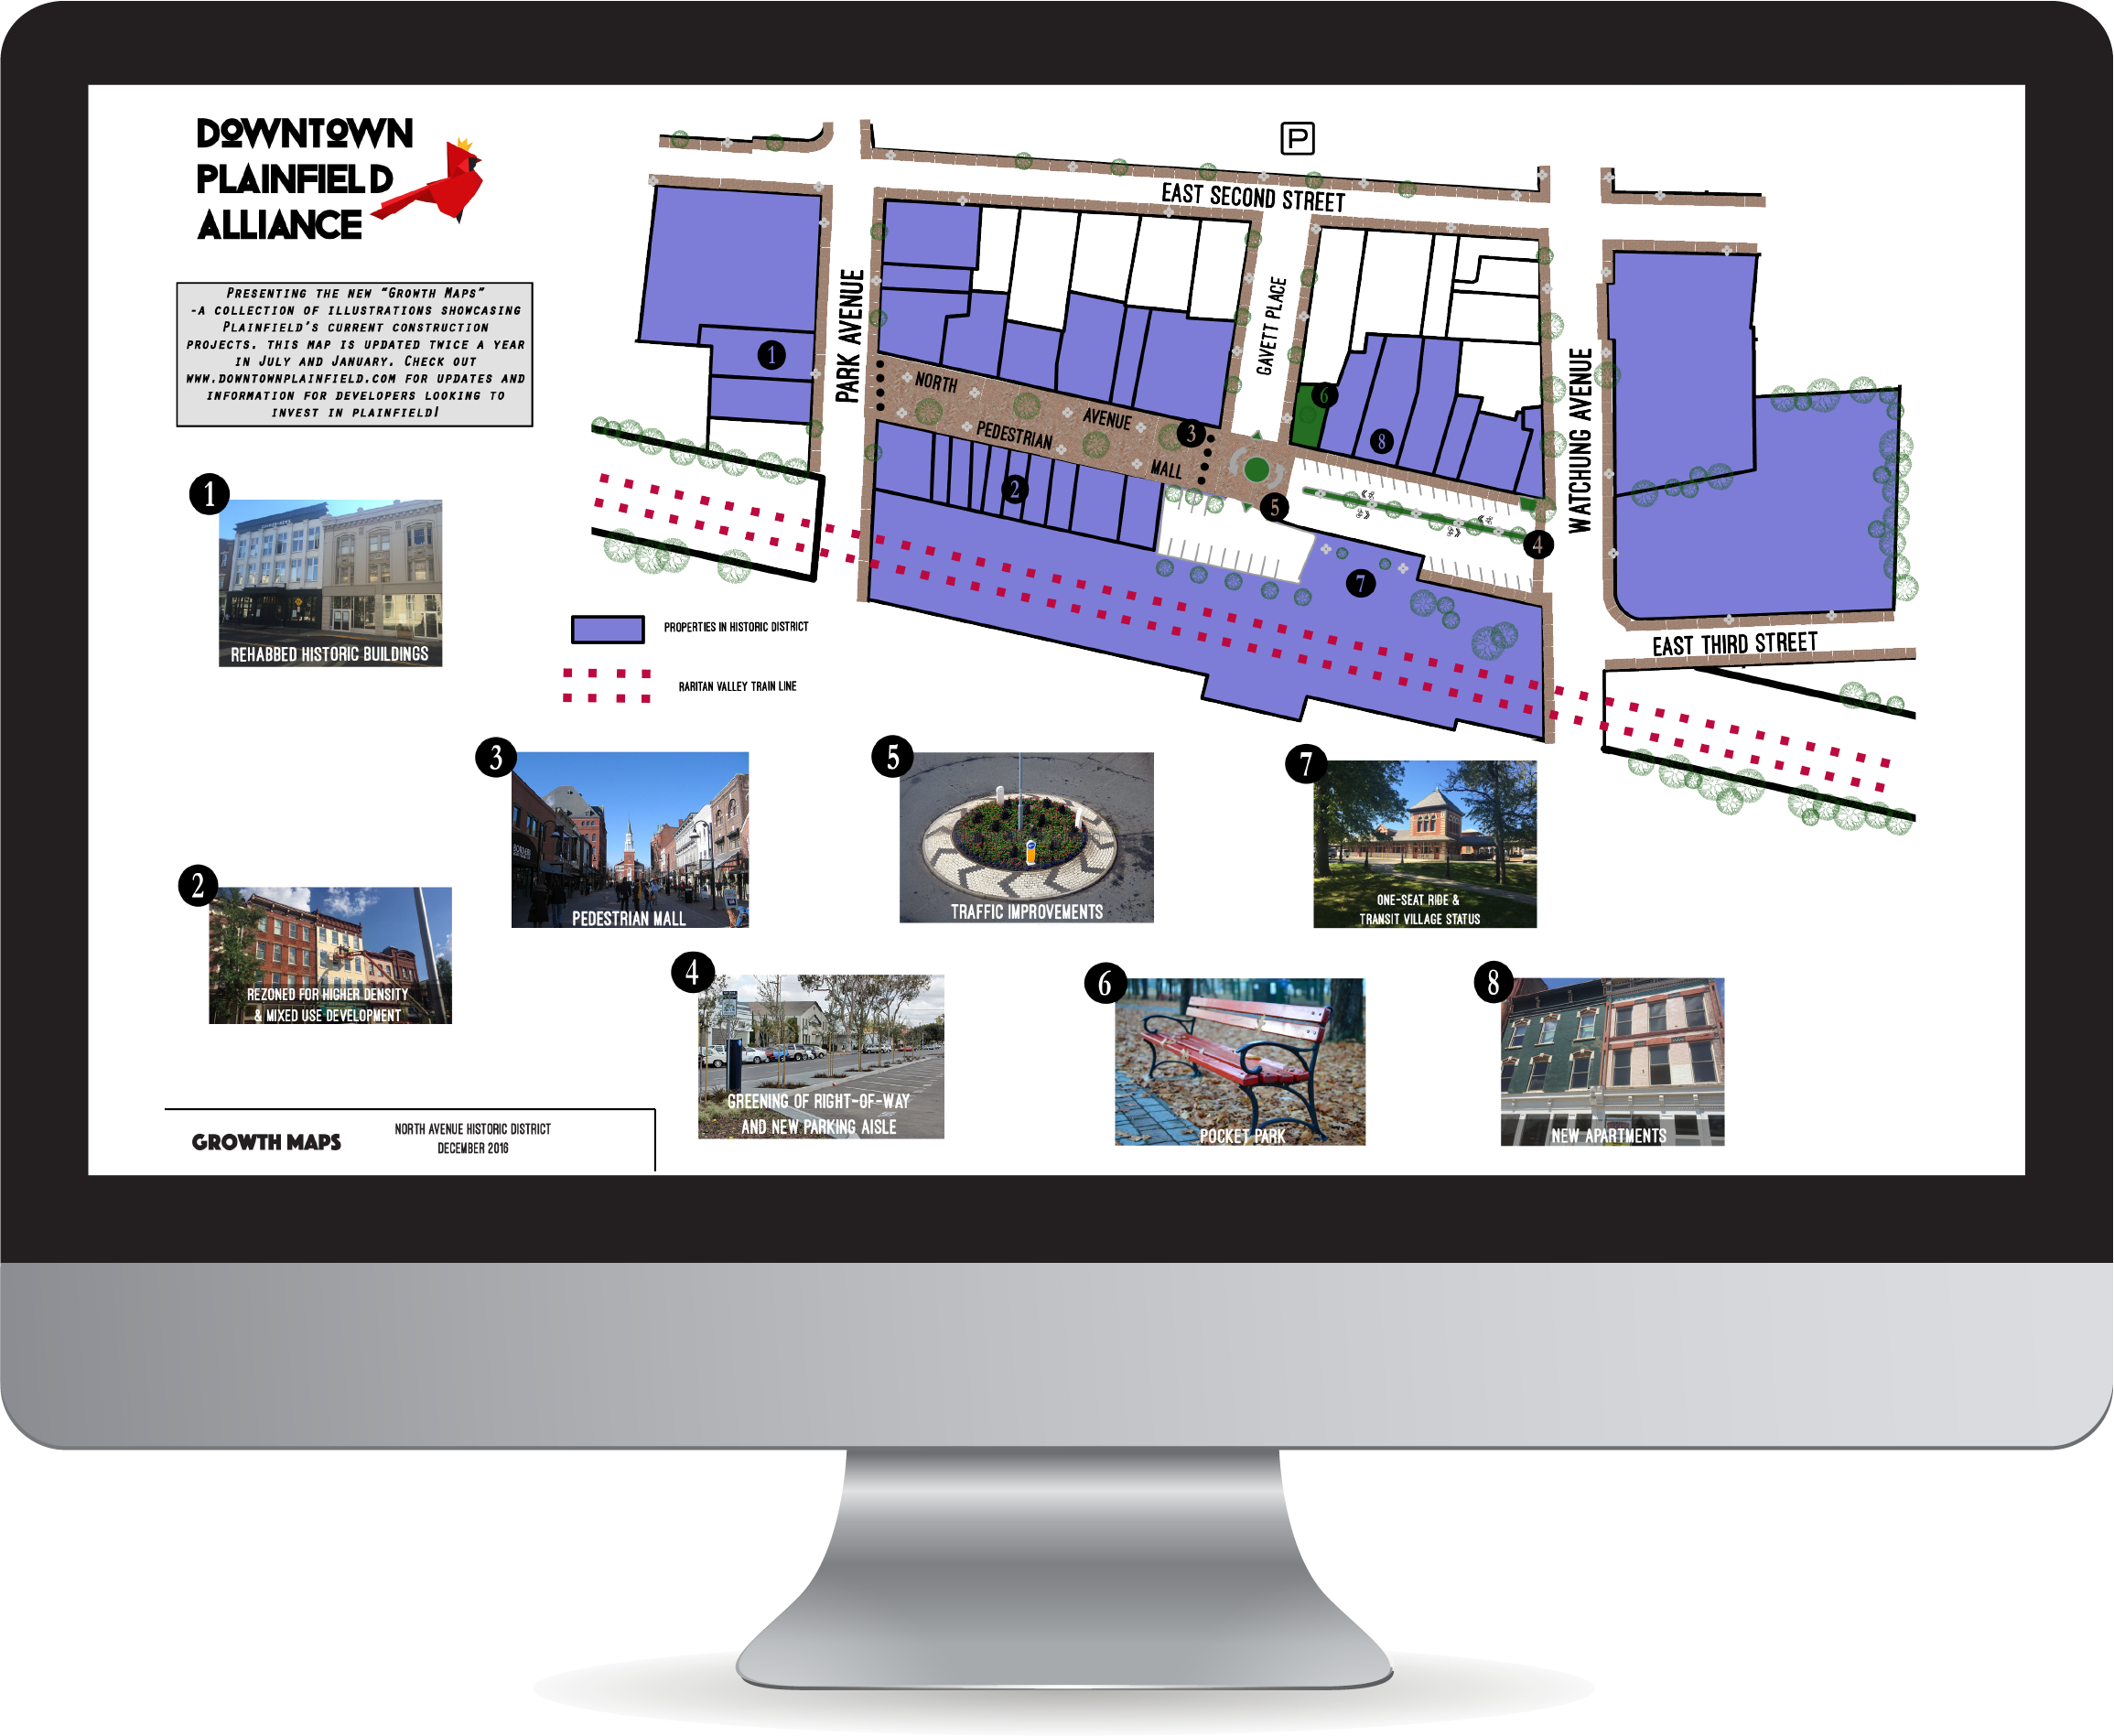 Plainfield Growth Maps March 1, 2017    The  Downtown Plainfield Alliance growth maps show all new development in Plainfield, NJ. The series of 4 maps are updated bi-annually in July and January.